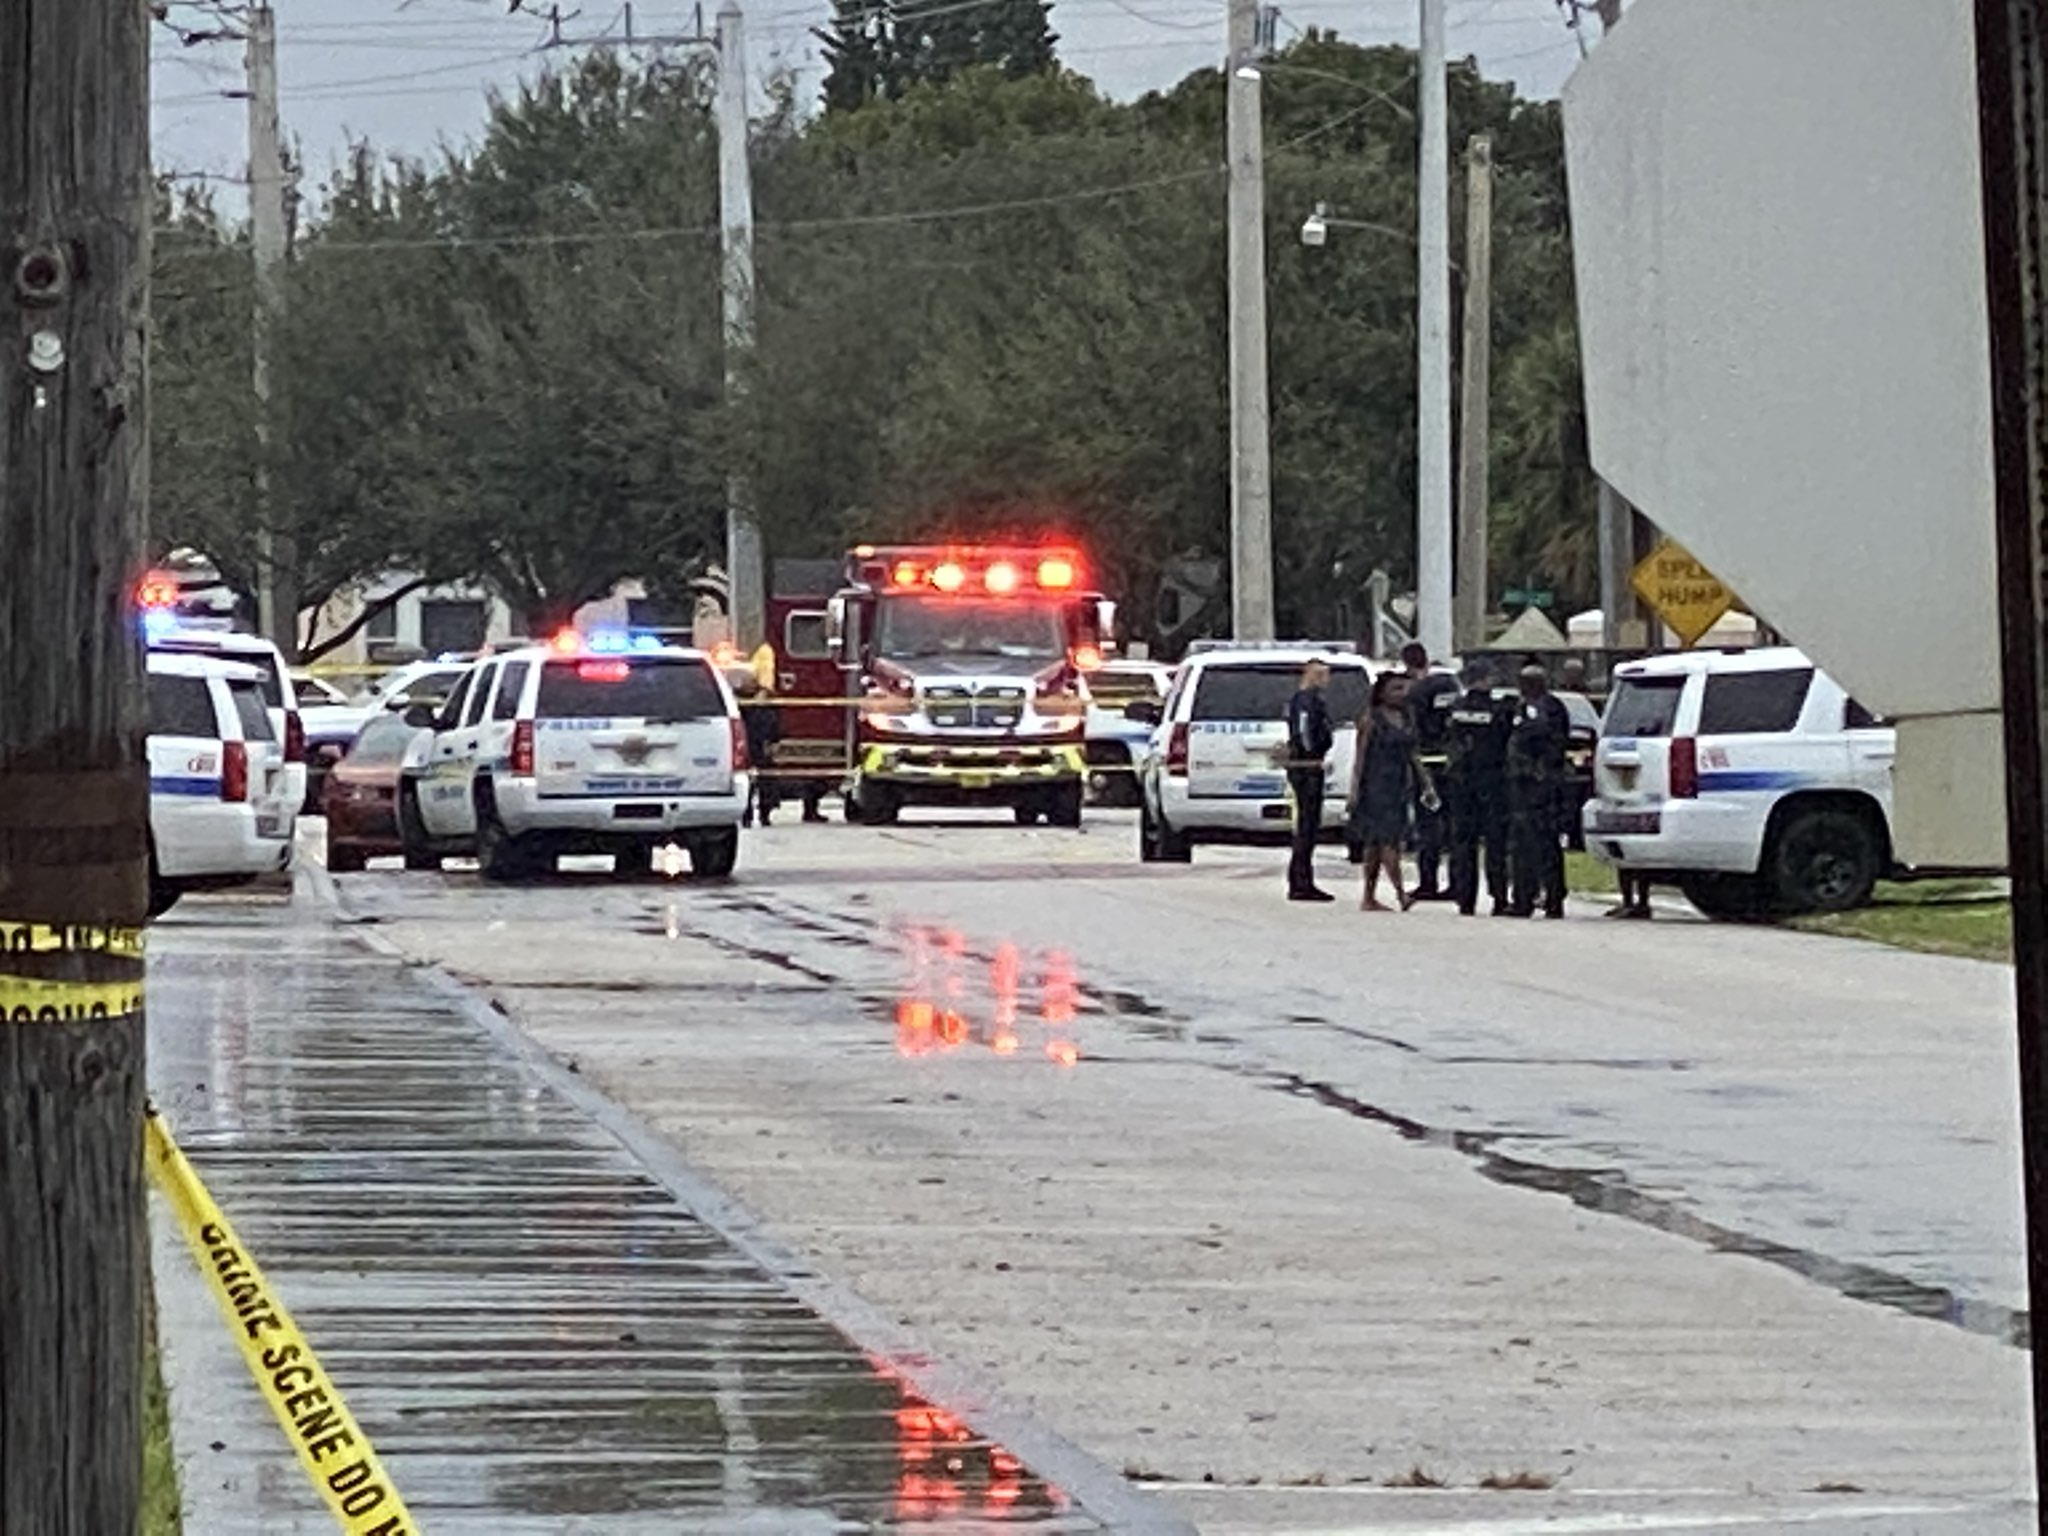 4 shot, 2 fatally, after funeral in Florida